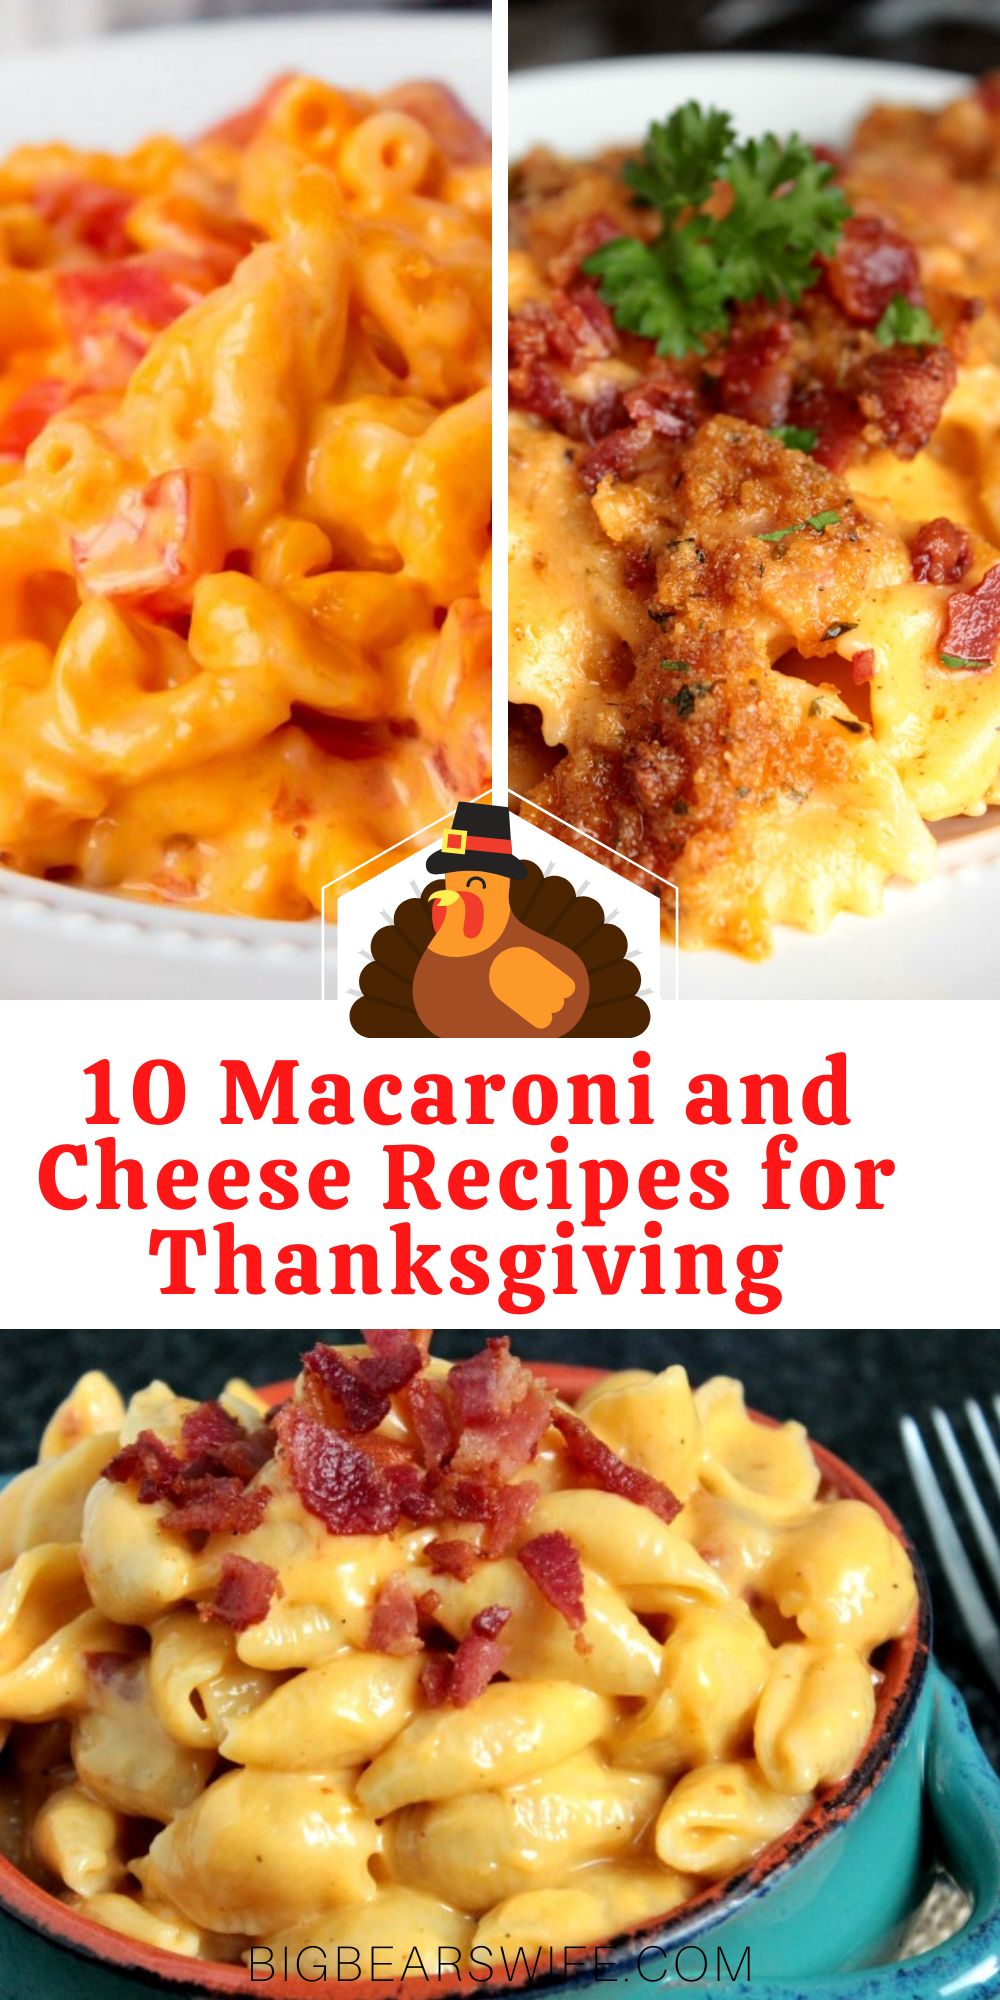 If you love Macaroni and Cheese then you know it has to be on the table at Thanksgiving! Here are 10 Macaroni and Cheese Recipes for Thanksgiving that you're going to love!